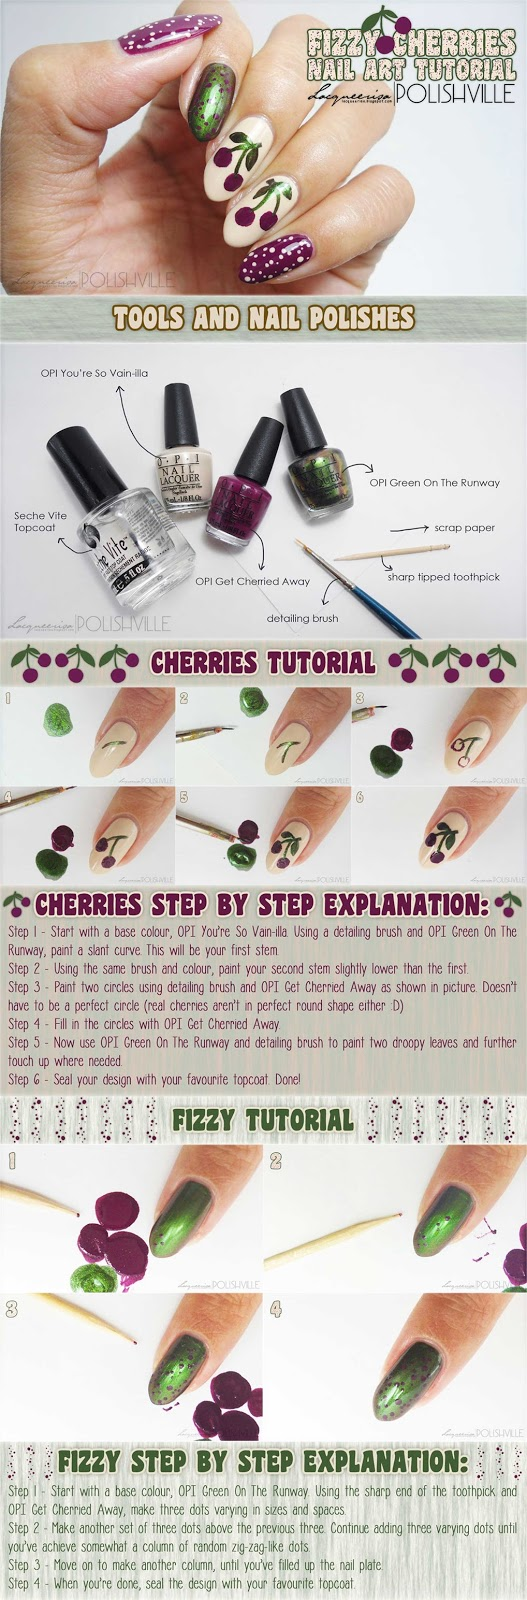 Fizzy Cherries Tutorial, LacqueerisaXPolishville